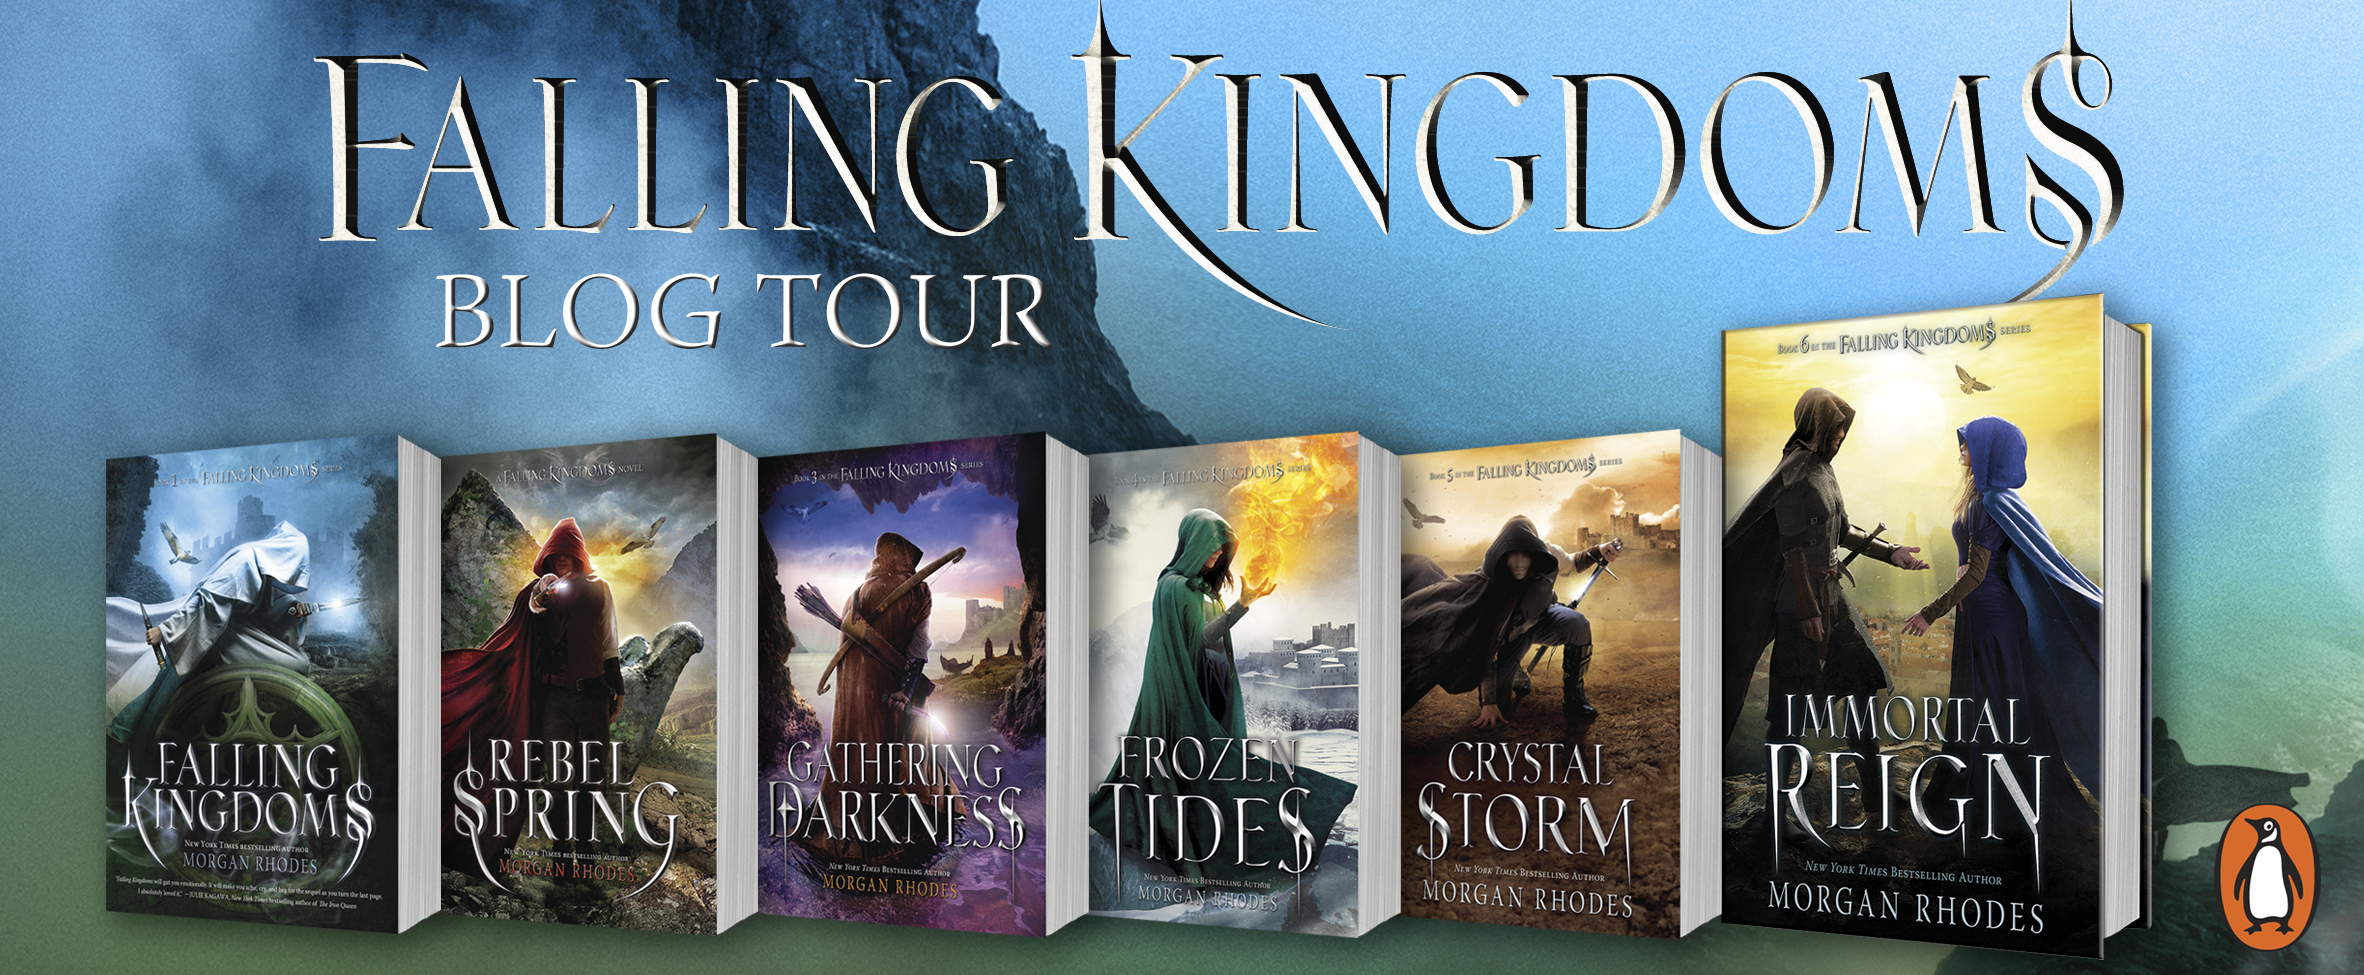 BLOG TOUR+BOOK REVIEW: Gathering Darkness (Falling Kingdoms #3) by Morgan Rhodes